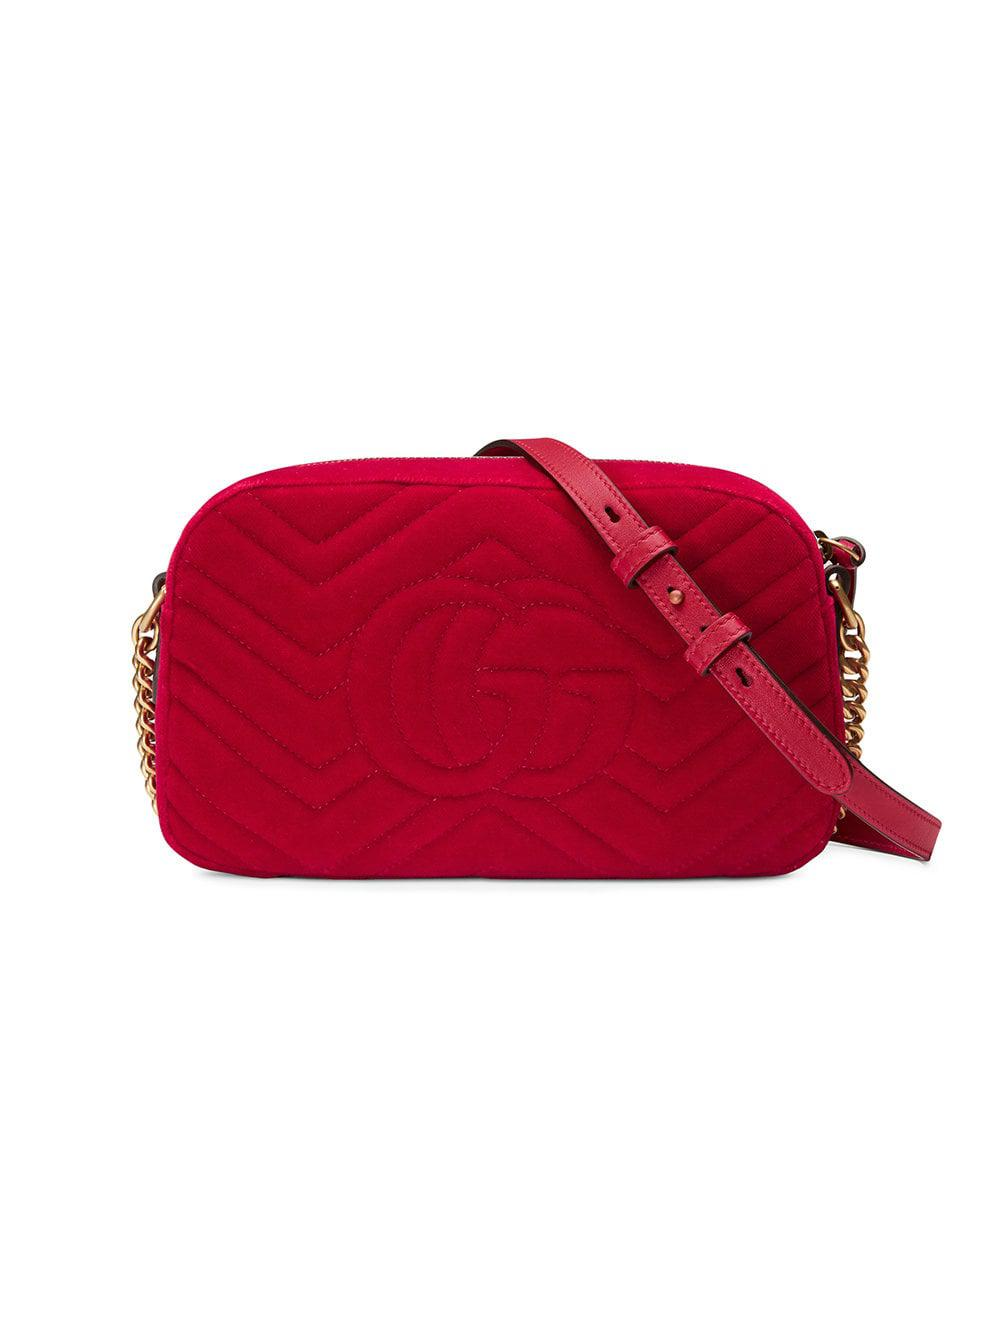 c700b38148ed2b Gucci Gg Marmont Velvet Small Shoulder Bag in Red - Save 13% - Lyst